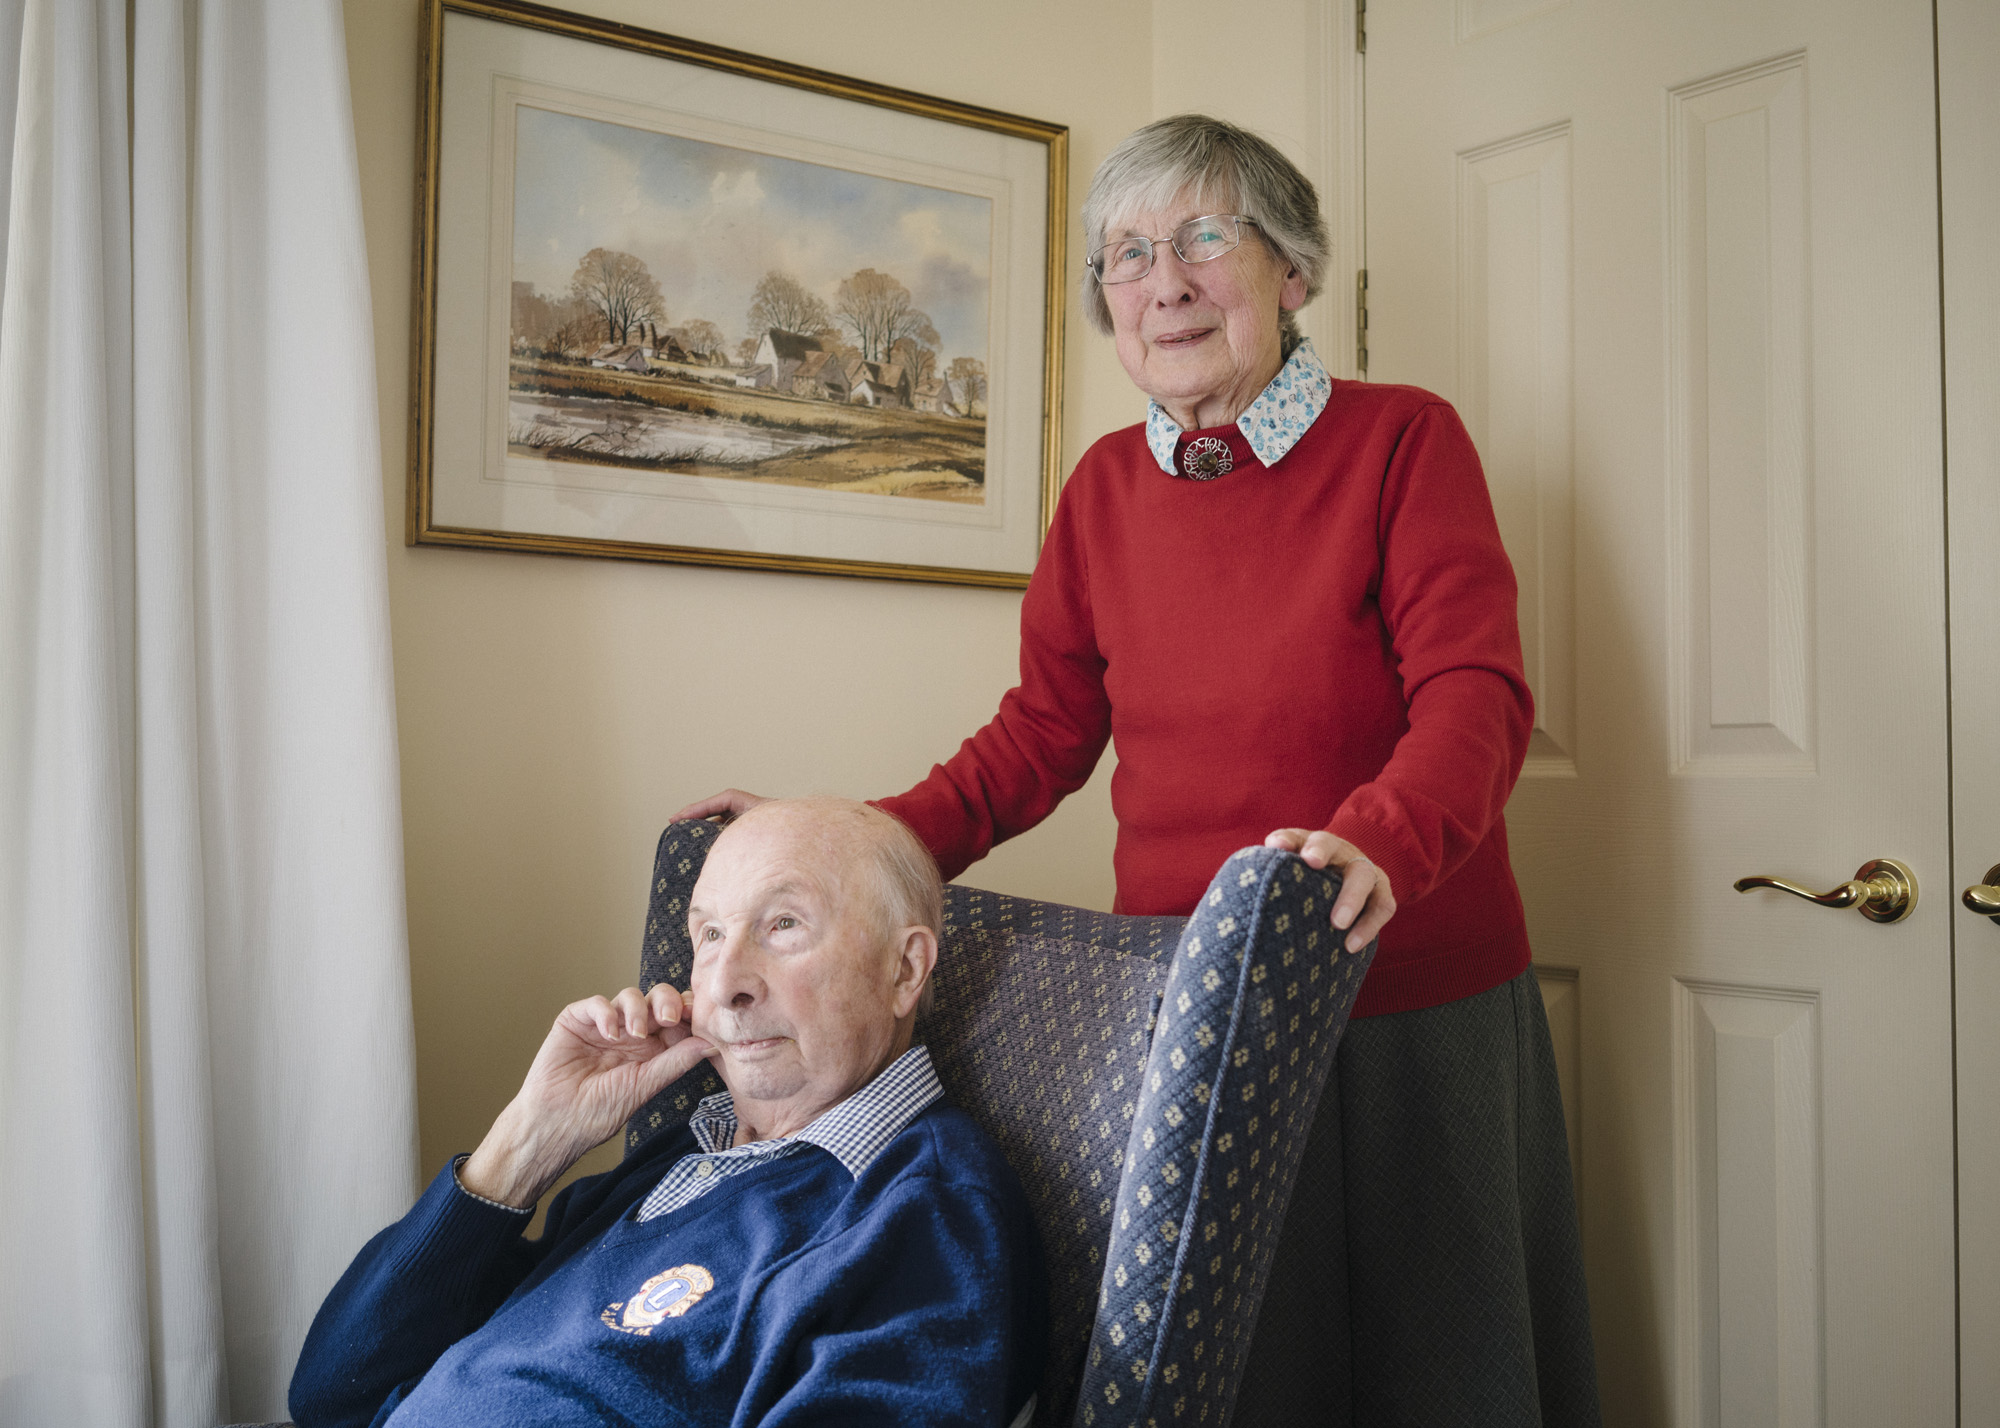 Couples in Sunrise Care Homes for The Metro. (Picture: Marco Kesseler for Metro.co.uk)